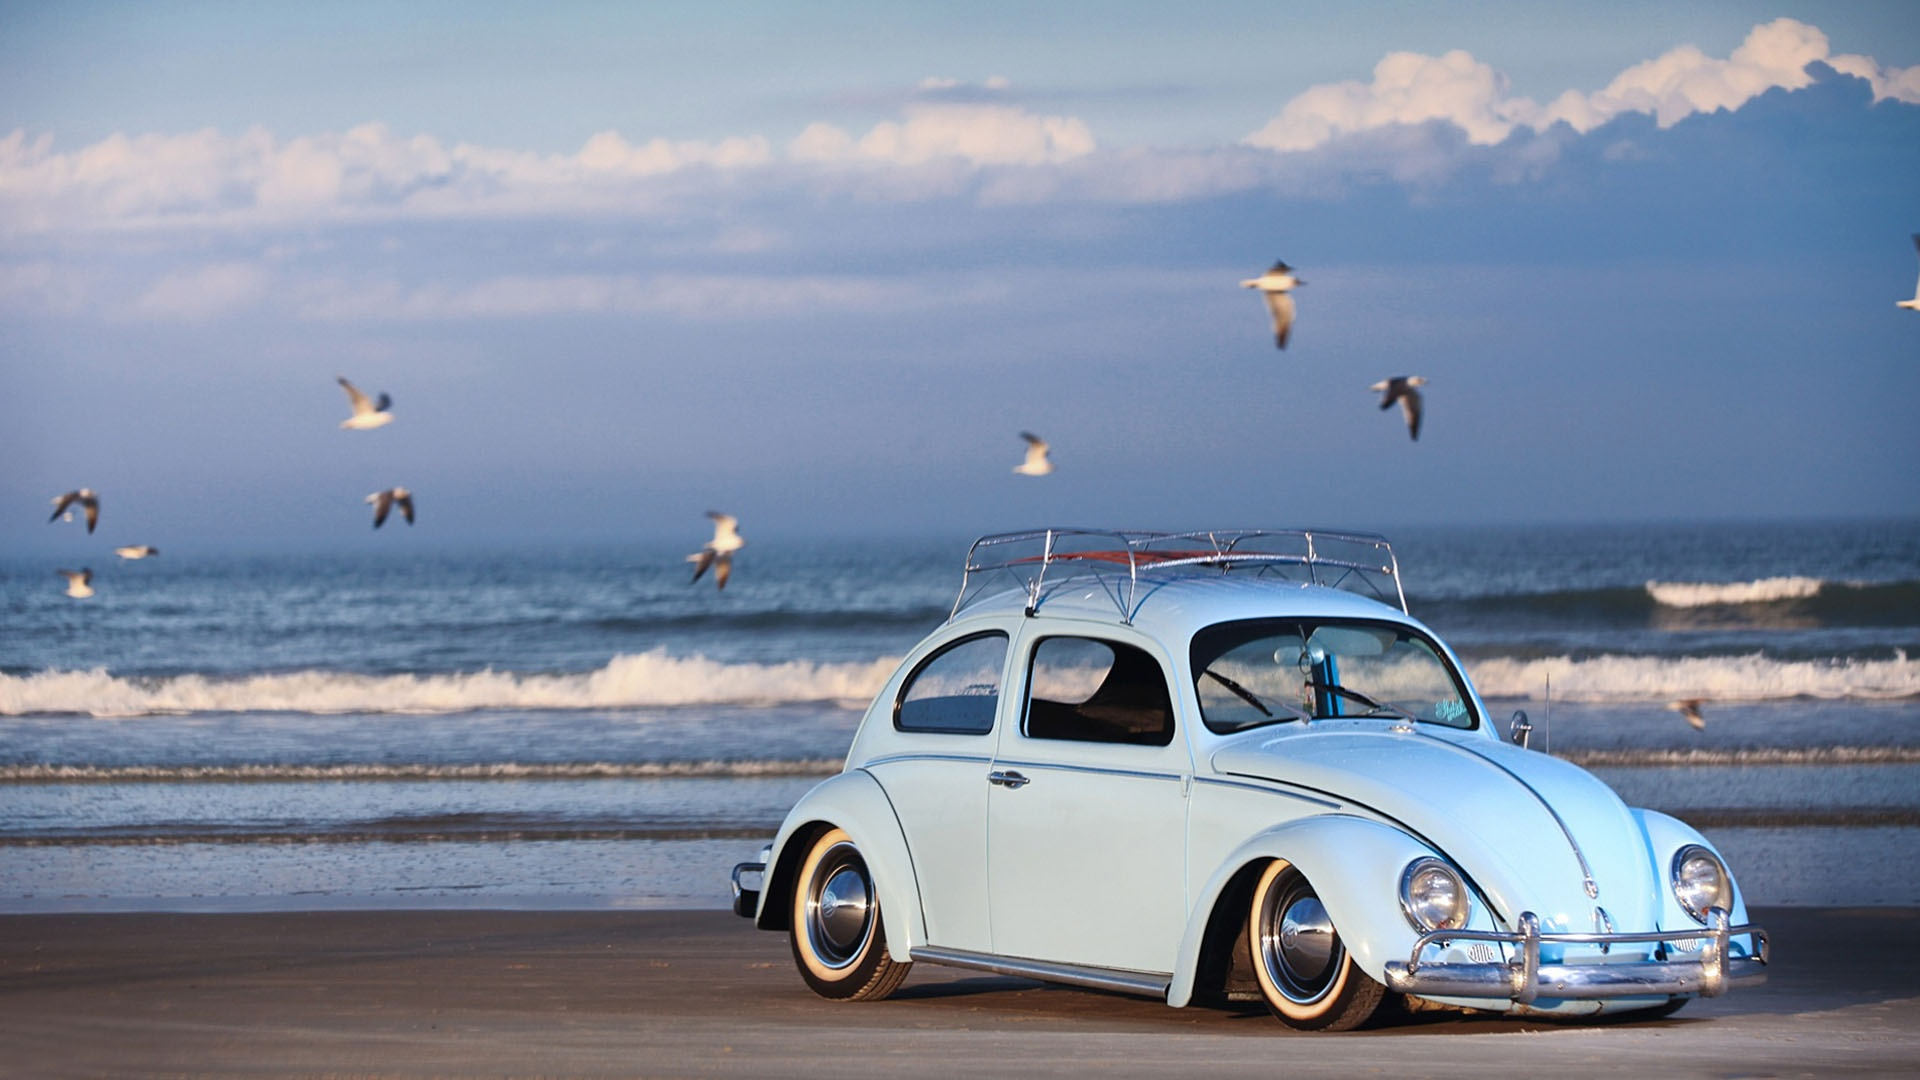 Awesome Volkswagen Wallpaper 23438 1920x1080px